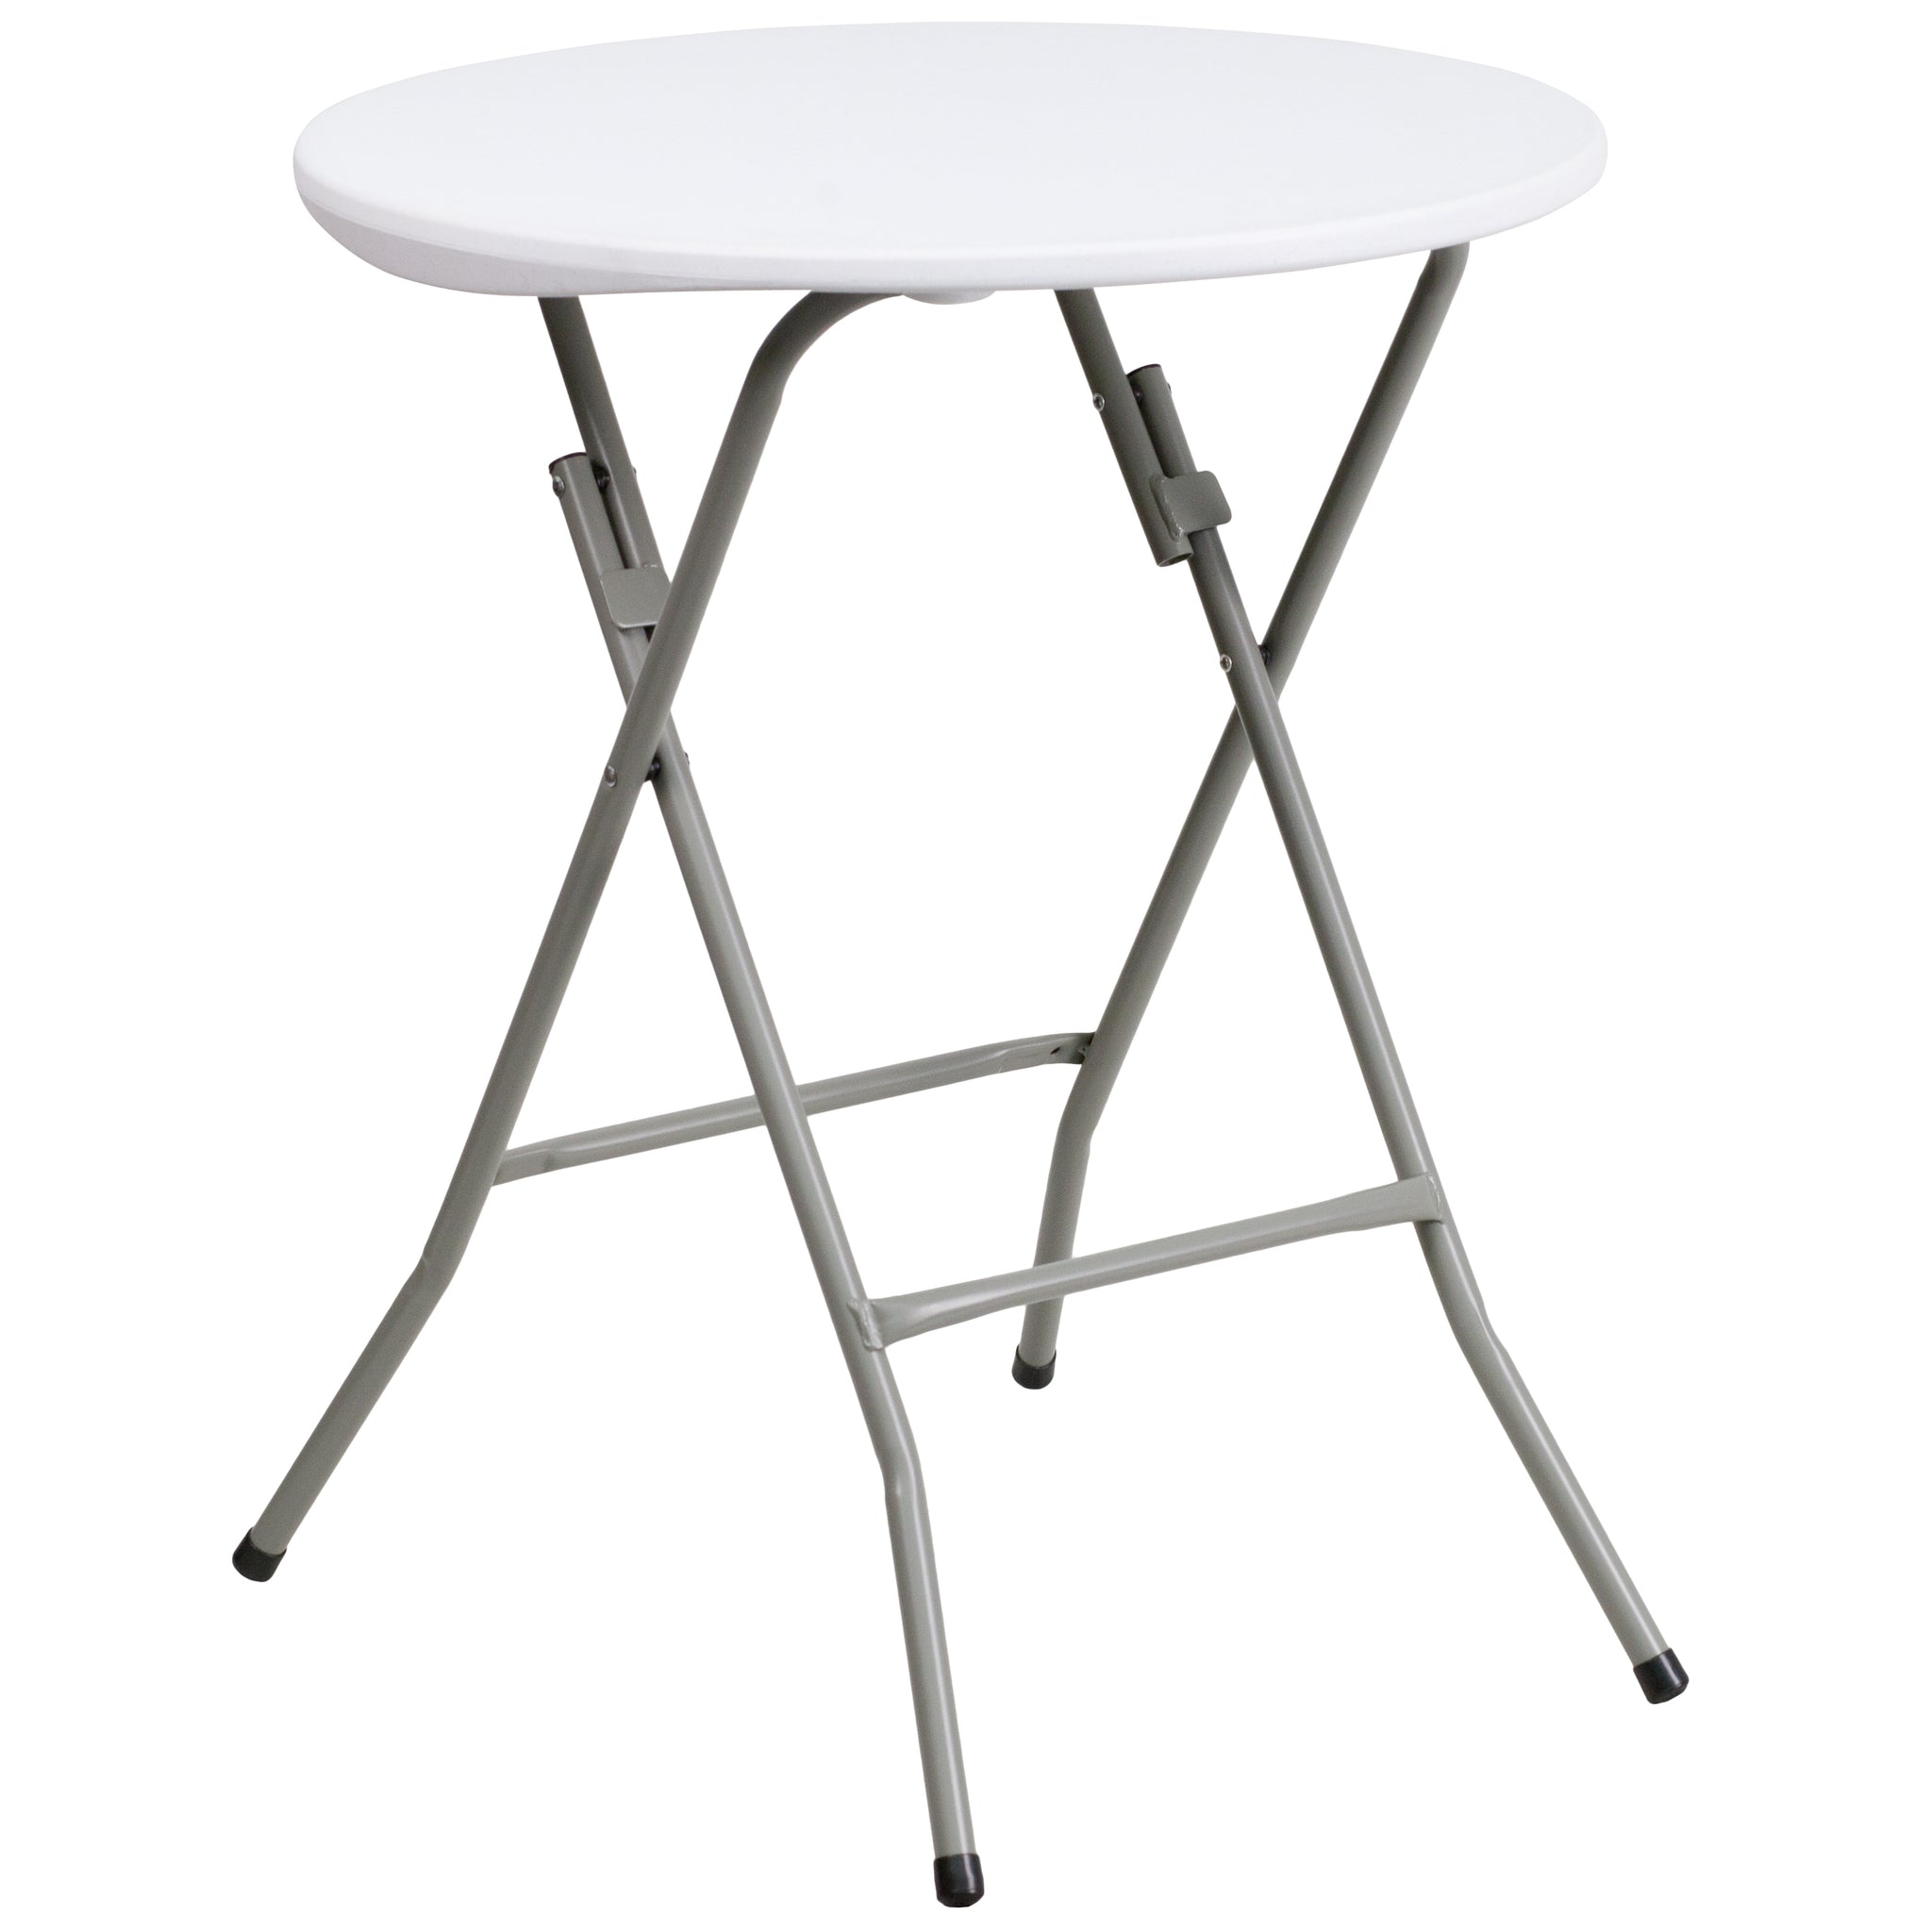 24'' Round Granite Plastic Folding Table: Granite White